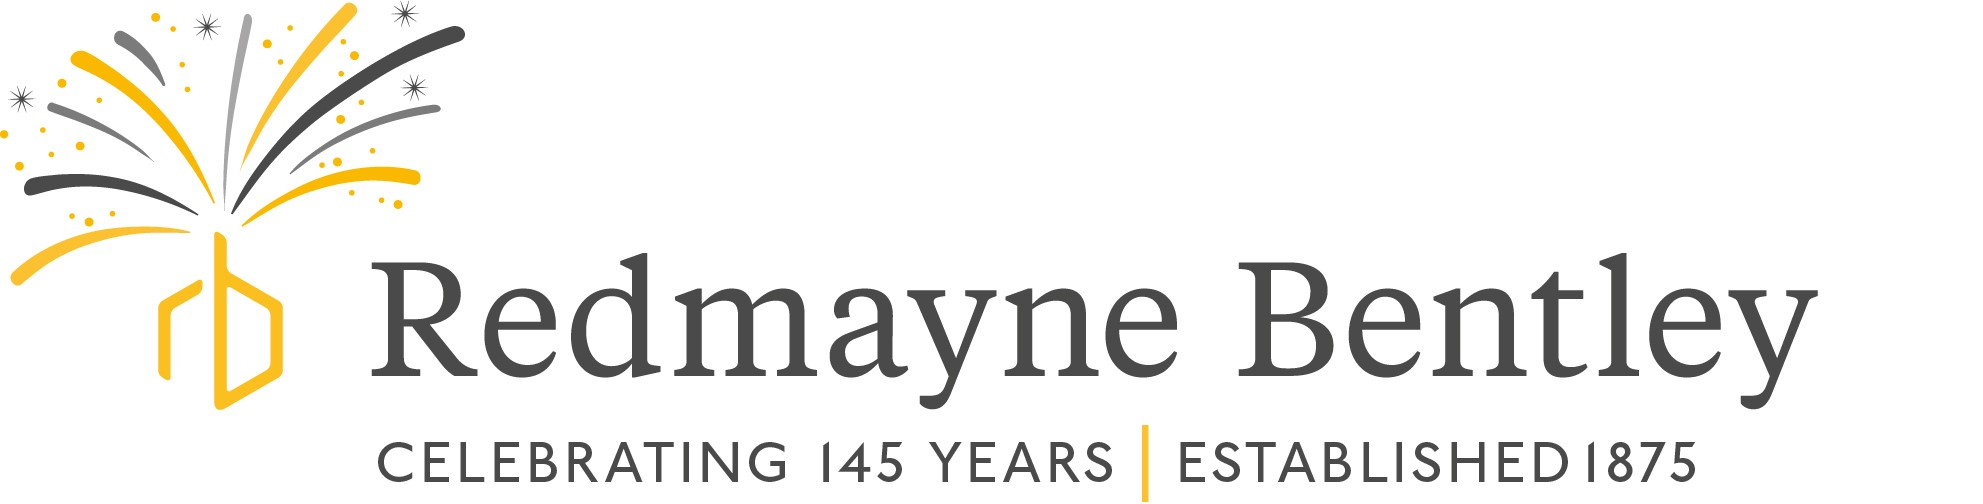 Redmayne Bentley to fund 145 Samaritans volunteers in its anniversary year